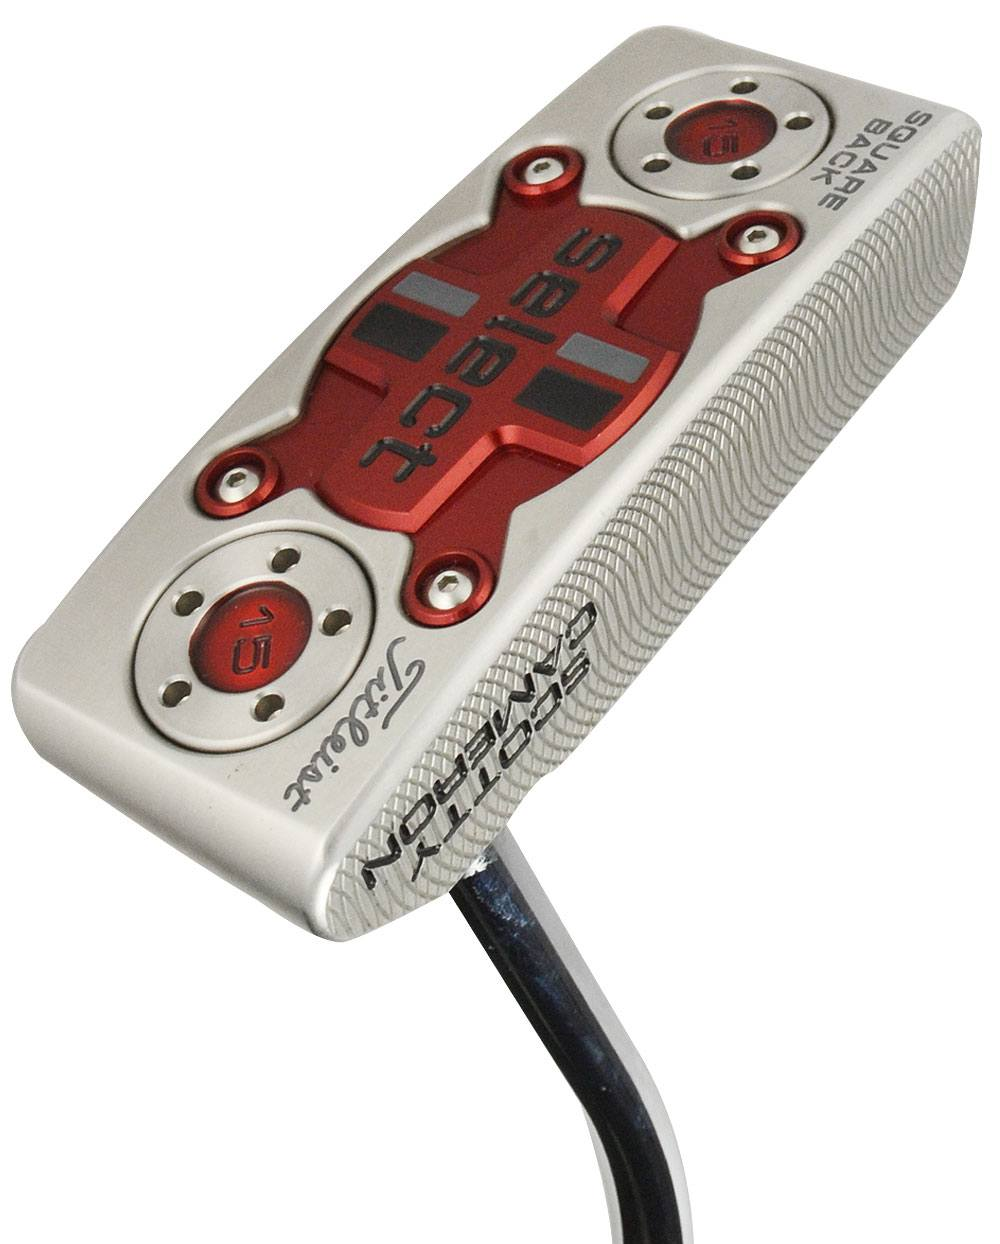 Scotty Cameron Titleist Golf Special select 2015 square back putter 34